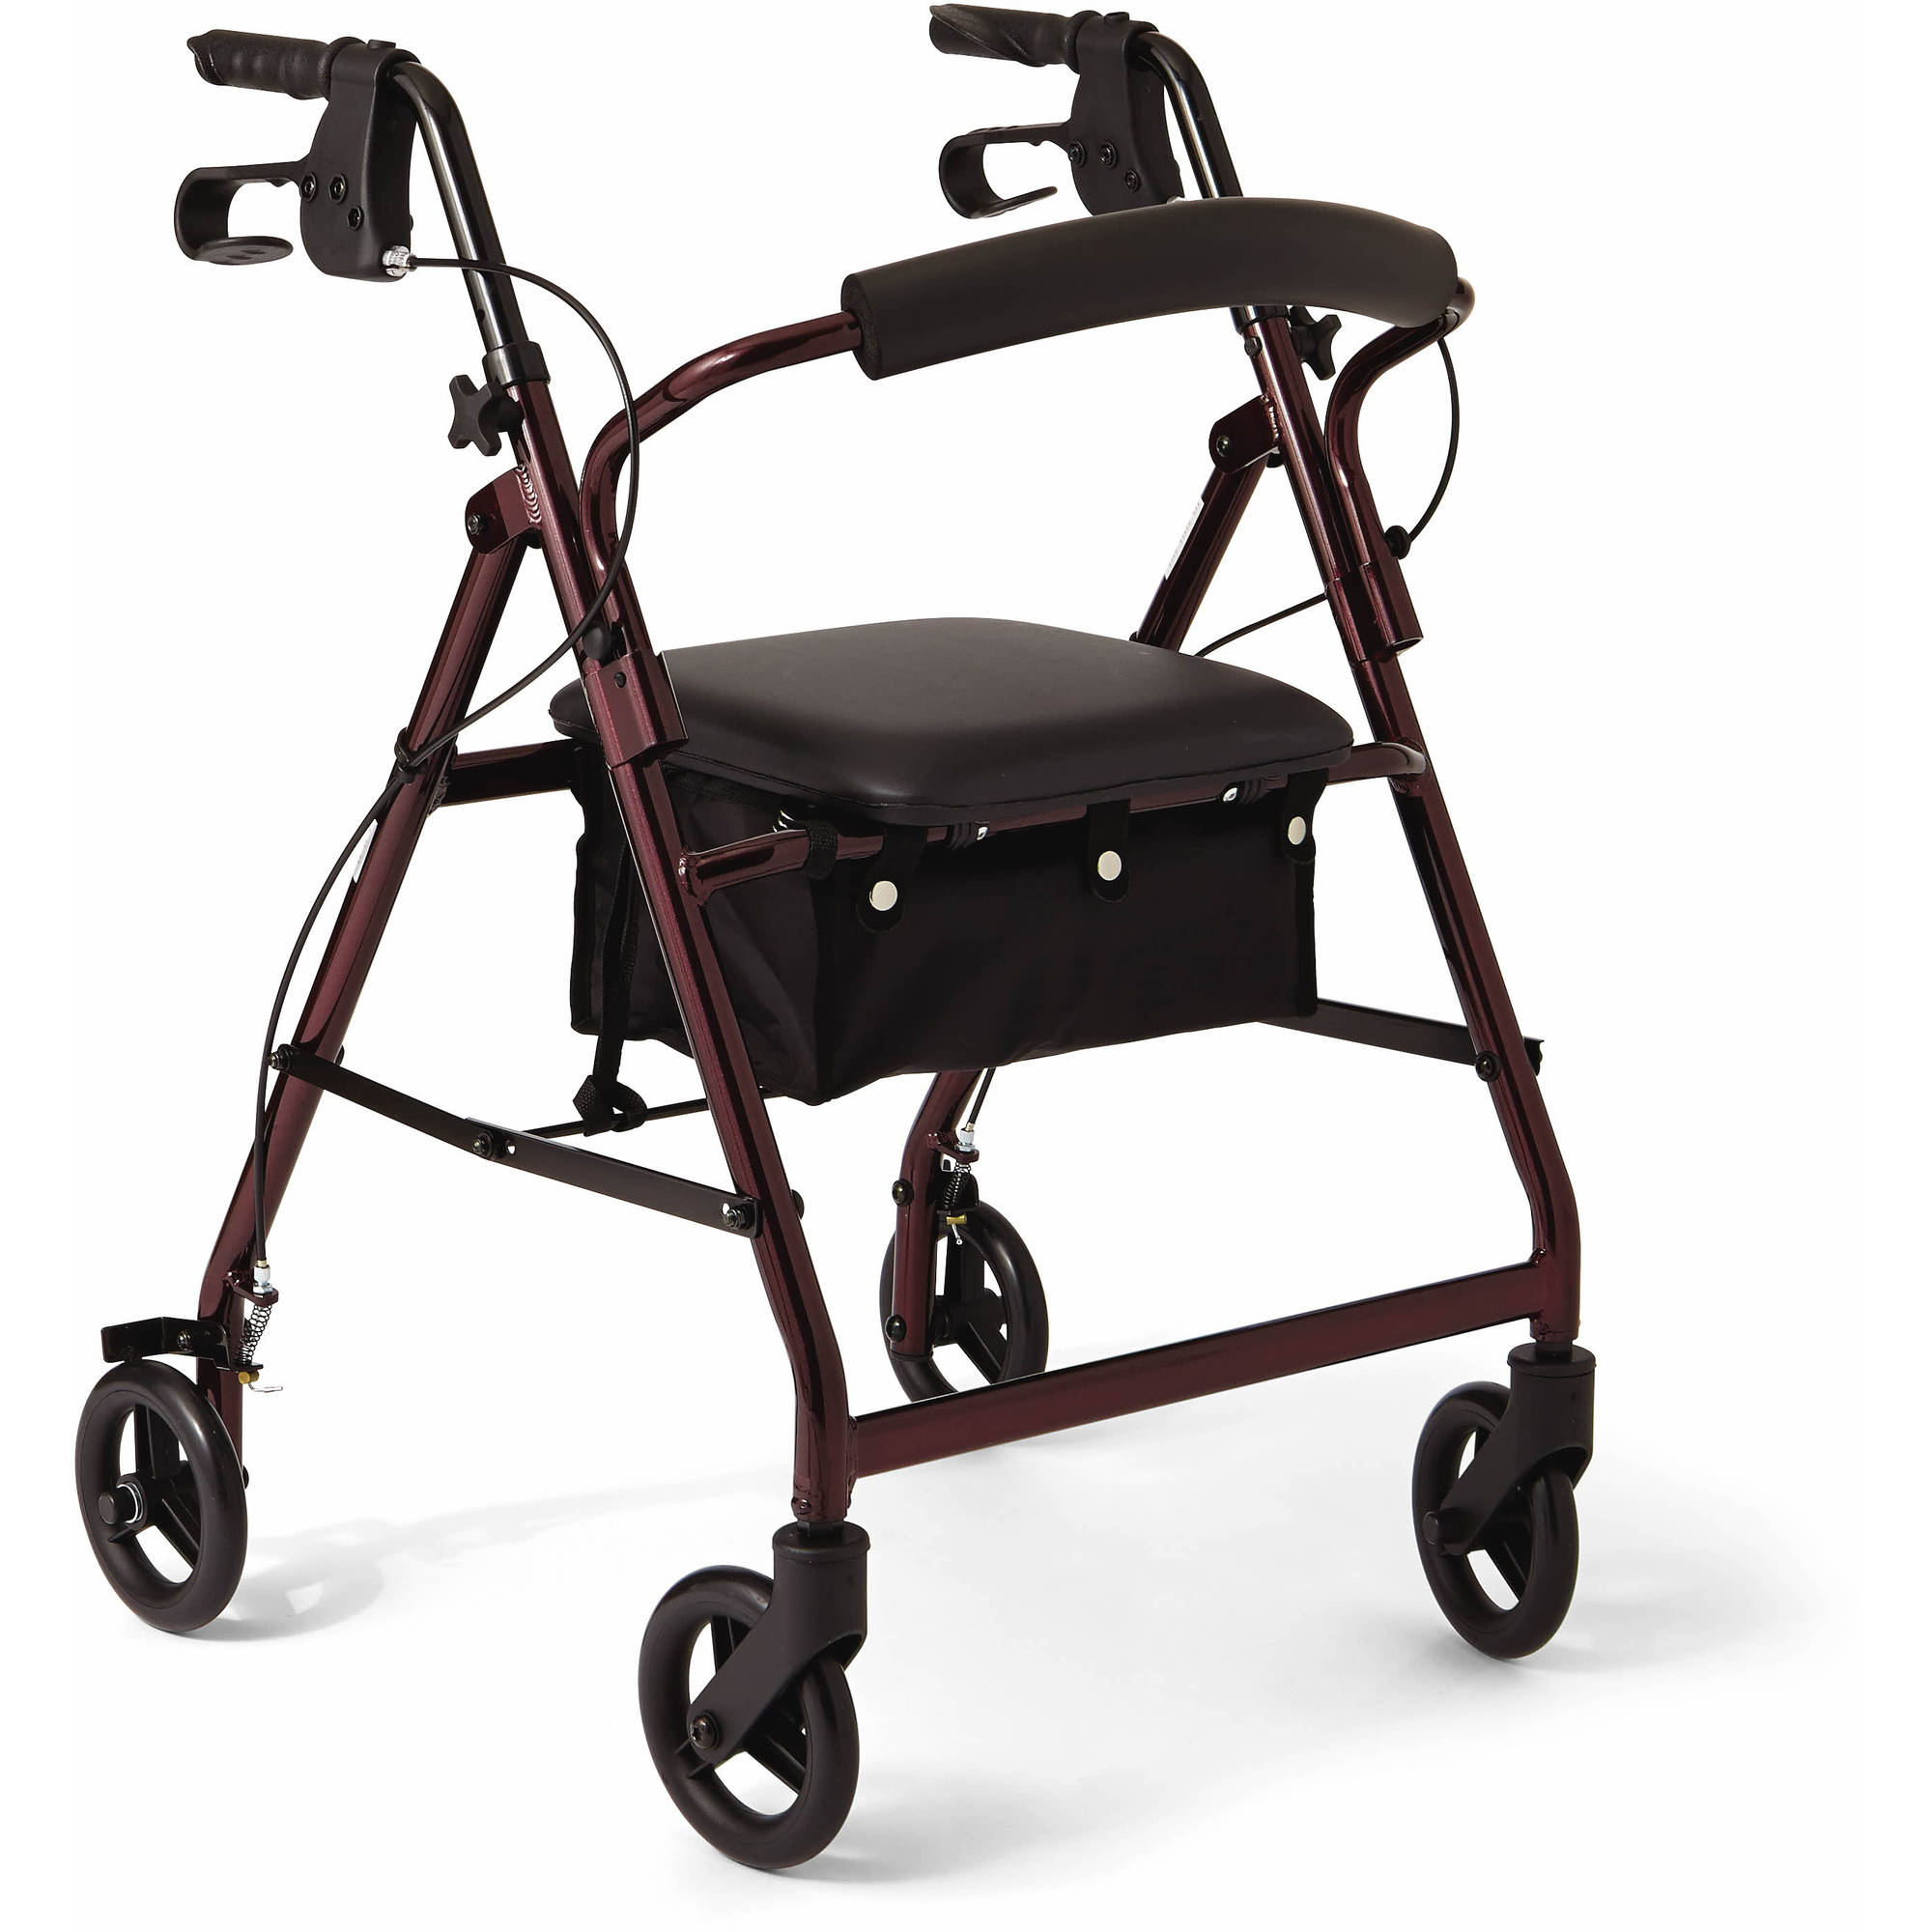 "Medline Aluminum Foldable Rollator Walker with 6"" Wheels, Burgundy"